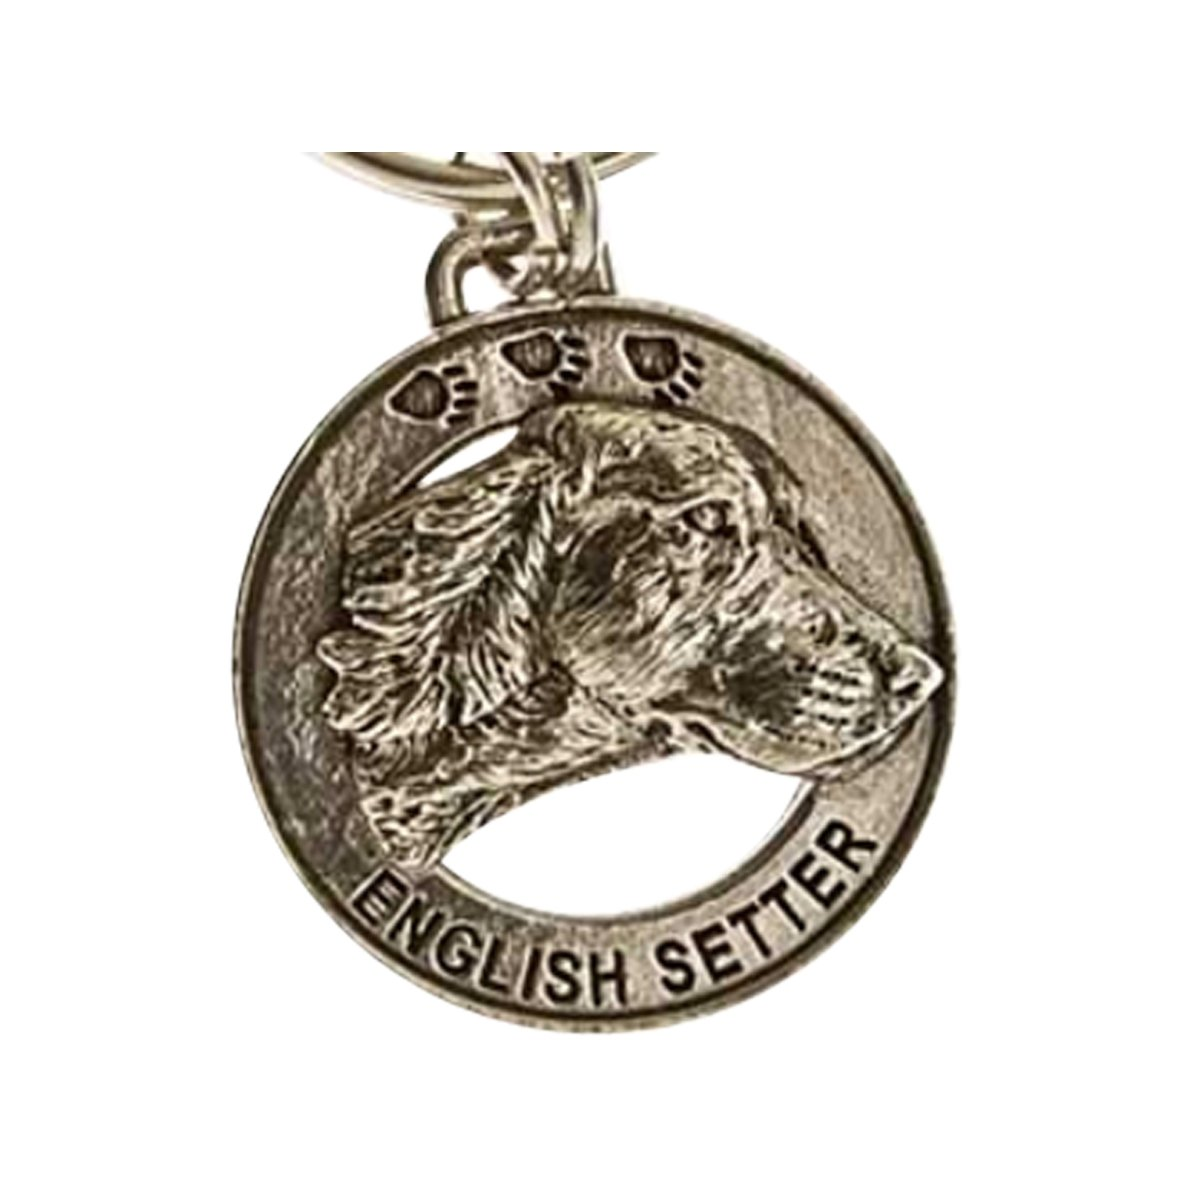 Creative Pewter Designs, Pewter English Setter Key Chain, Antiqued Finish, DK078